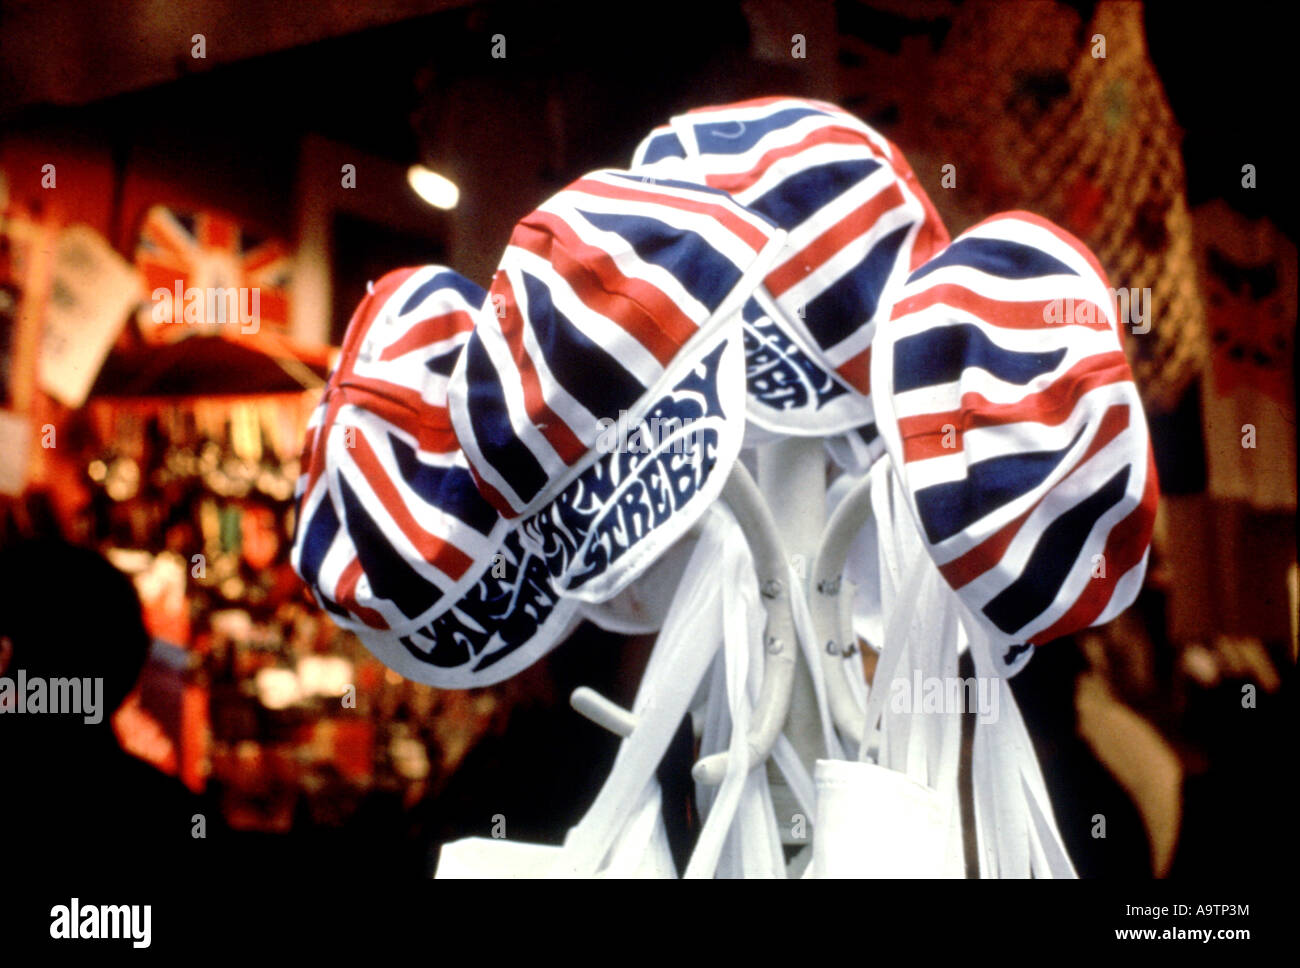 CARNABY STREET, London . Union Jack caps on sale in 1966. Photo Tony Gale - Stock Image